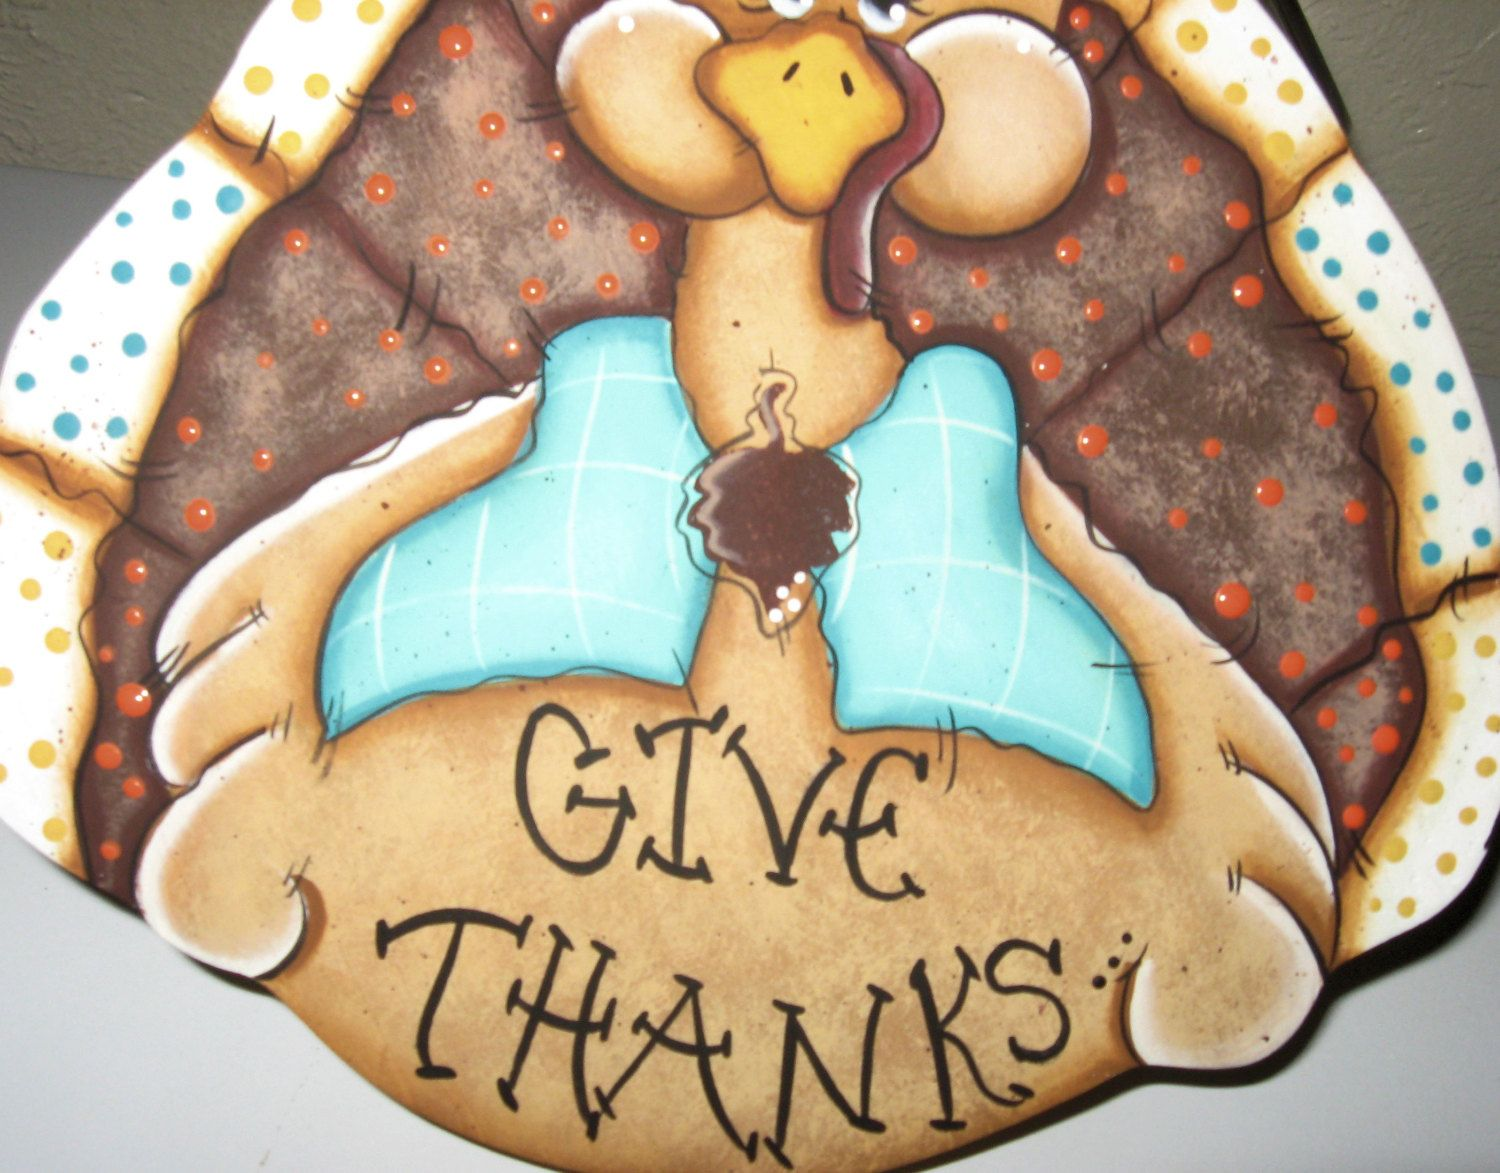 Thanksgiving turkey decor - Turkey Decor Turkey Cookie Lids Thanksgiving Decor Painted Turkey Decor Wood Turkeys